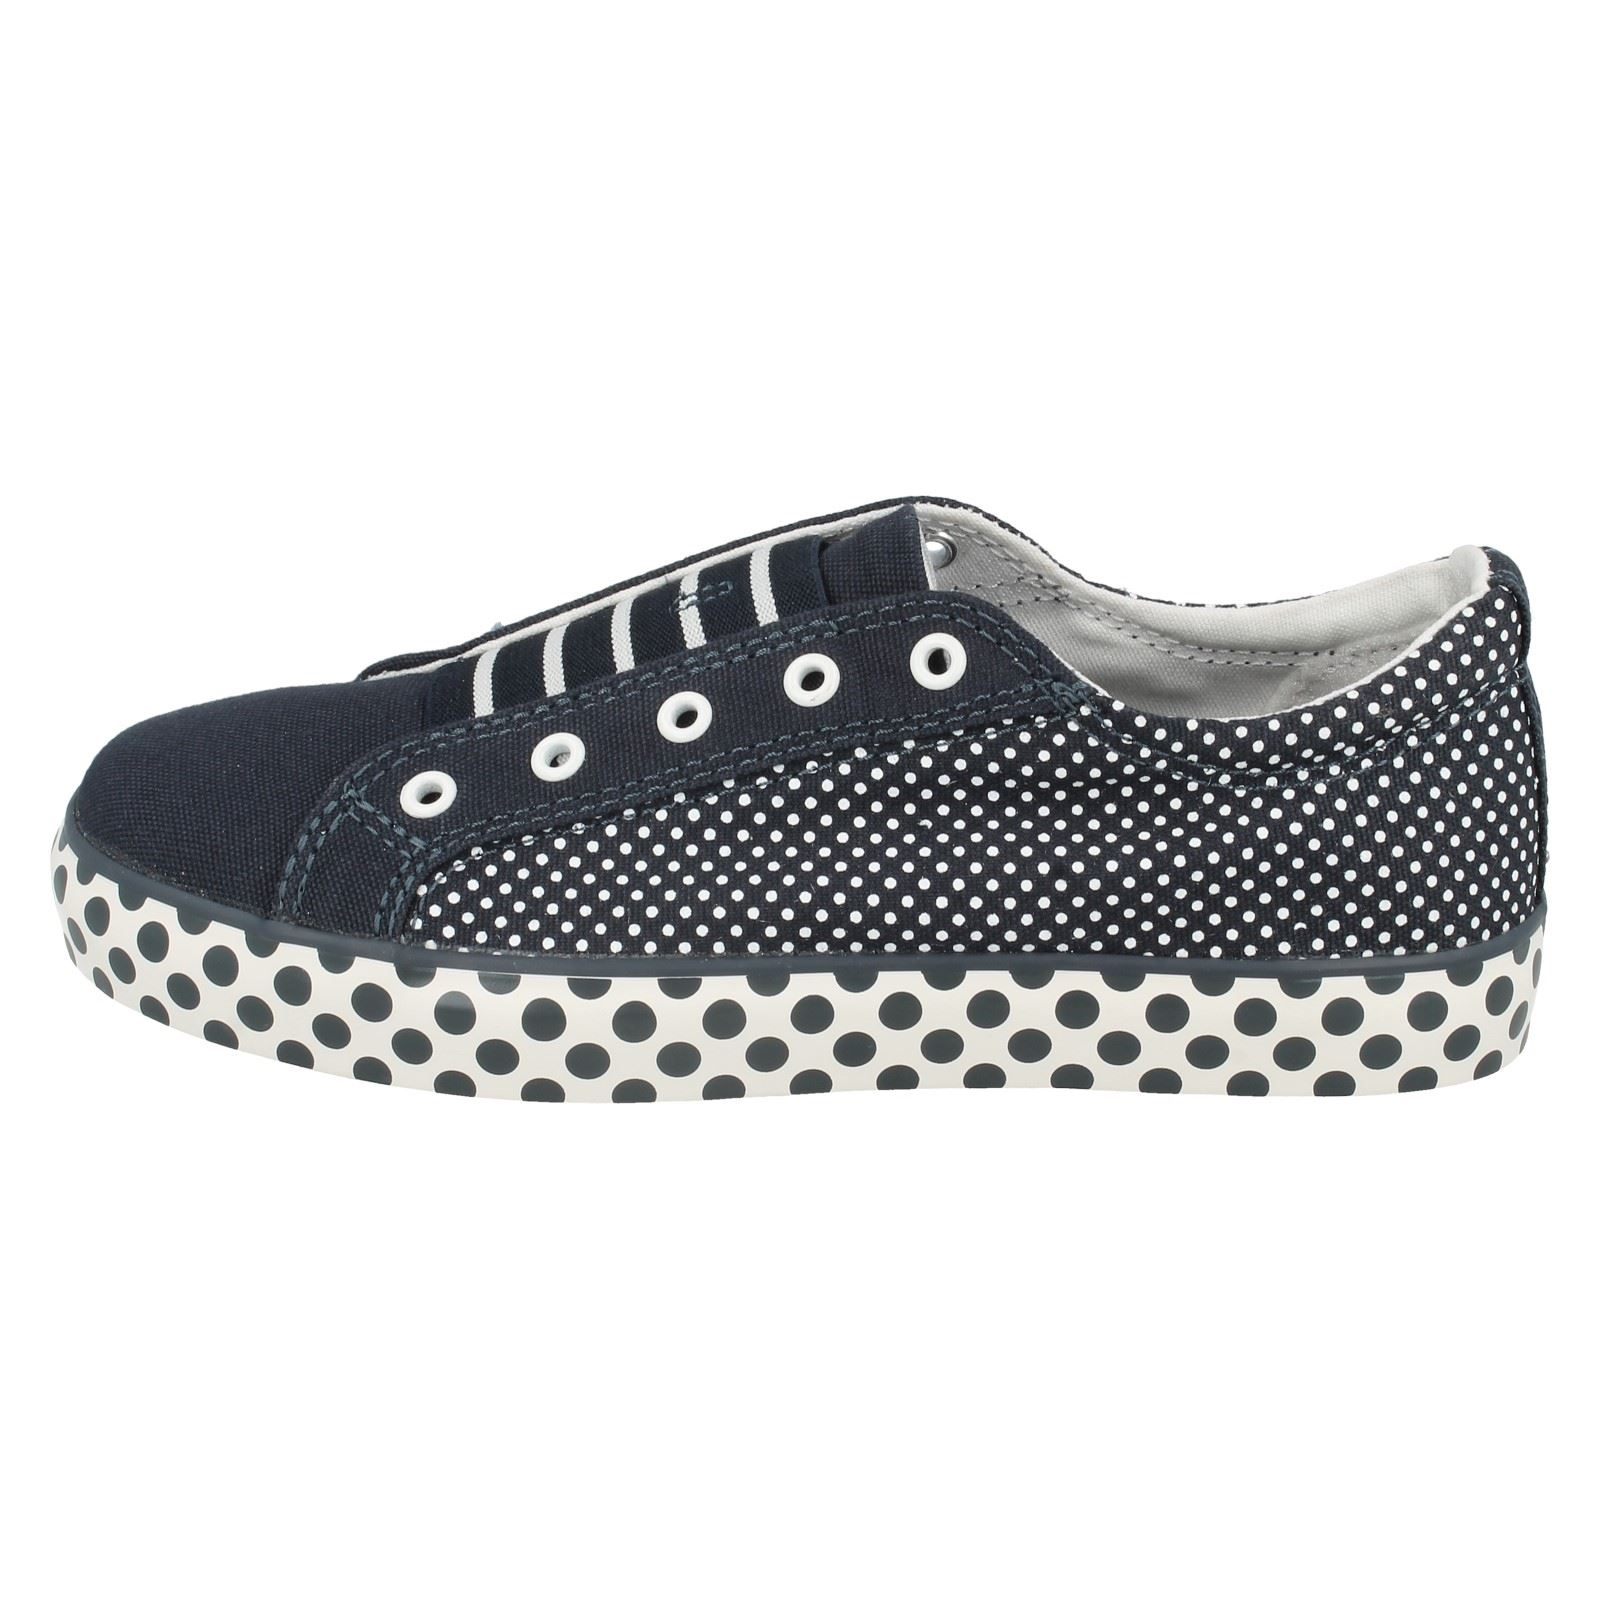 Girls Clarks Canvas Shoes The Style Brill Lace